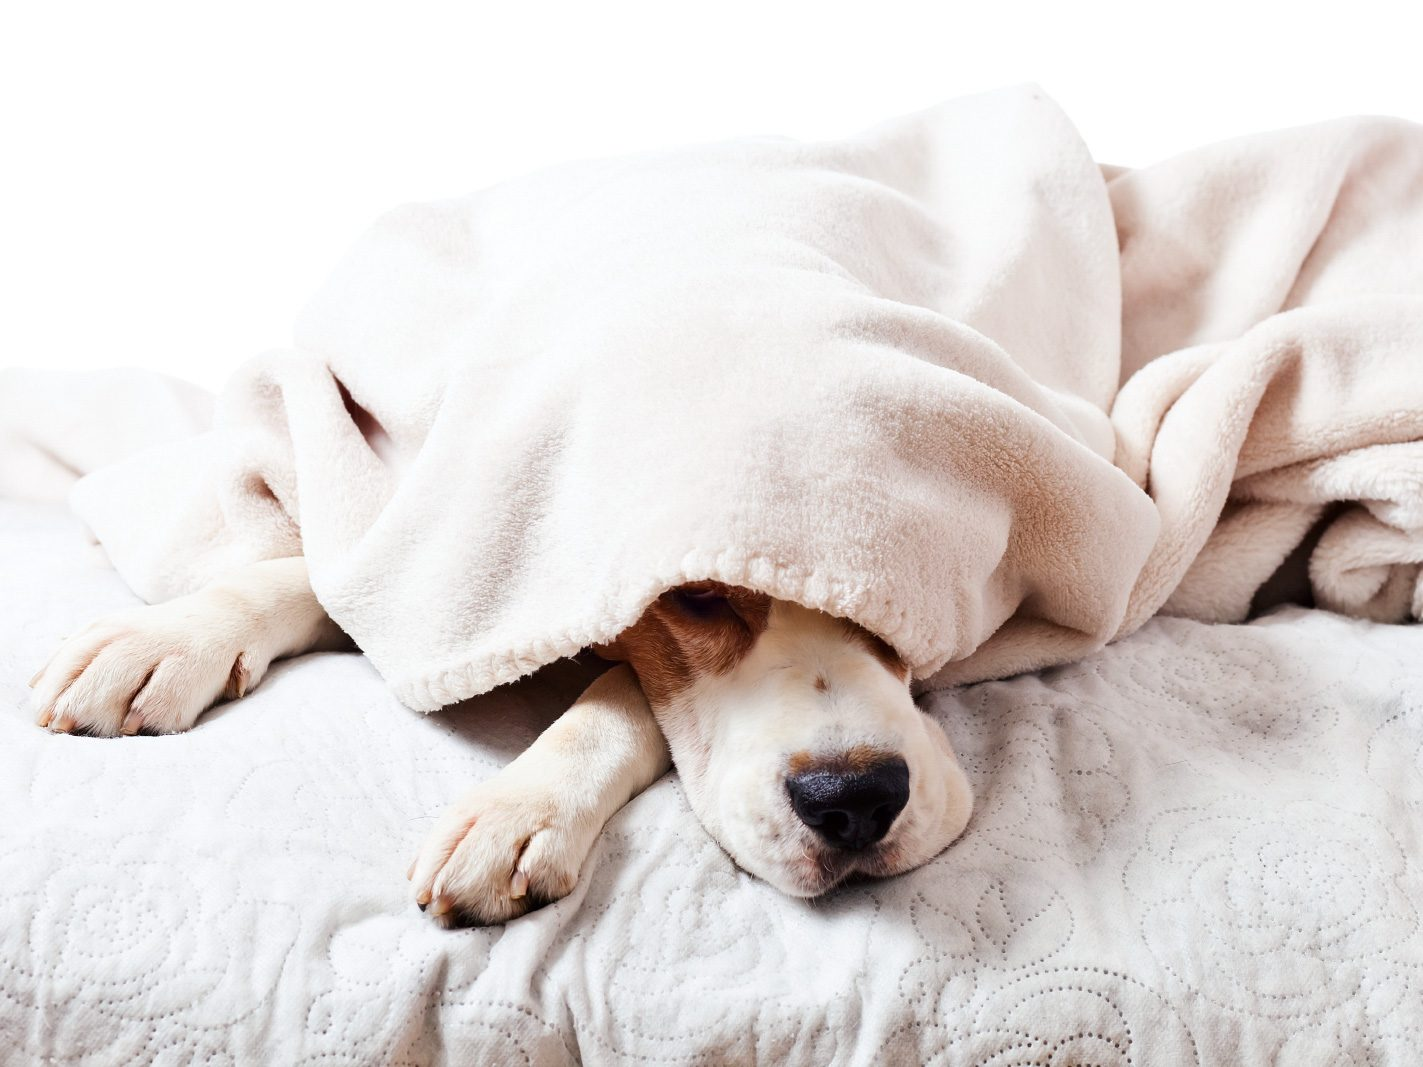 Fact or Fiction: Sleeping in Air-Conditioning Can Give You a Chill